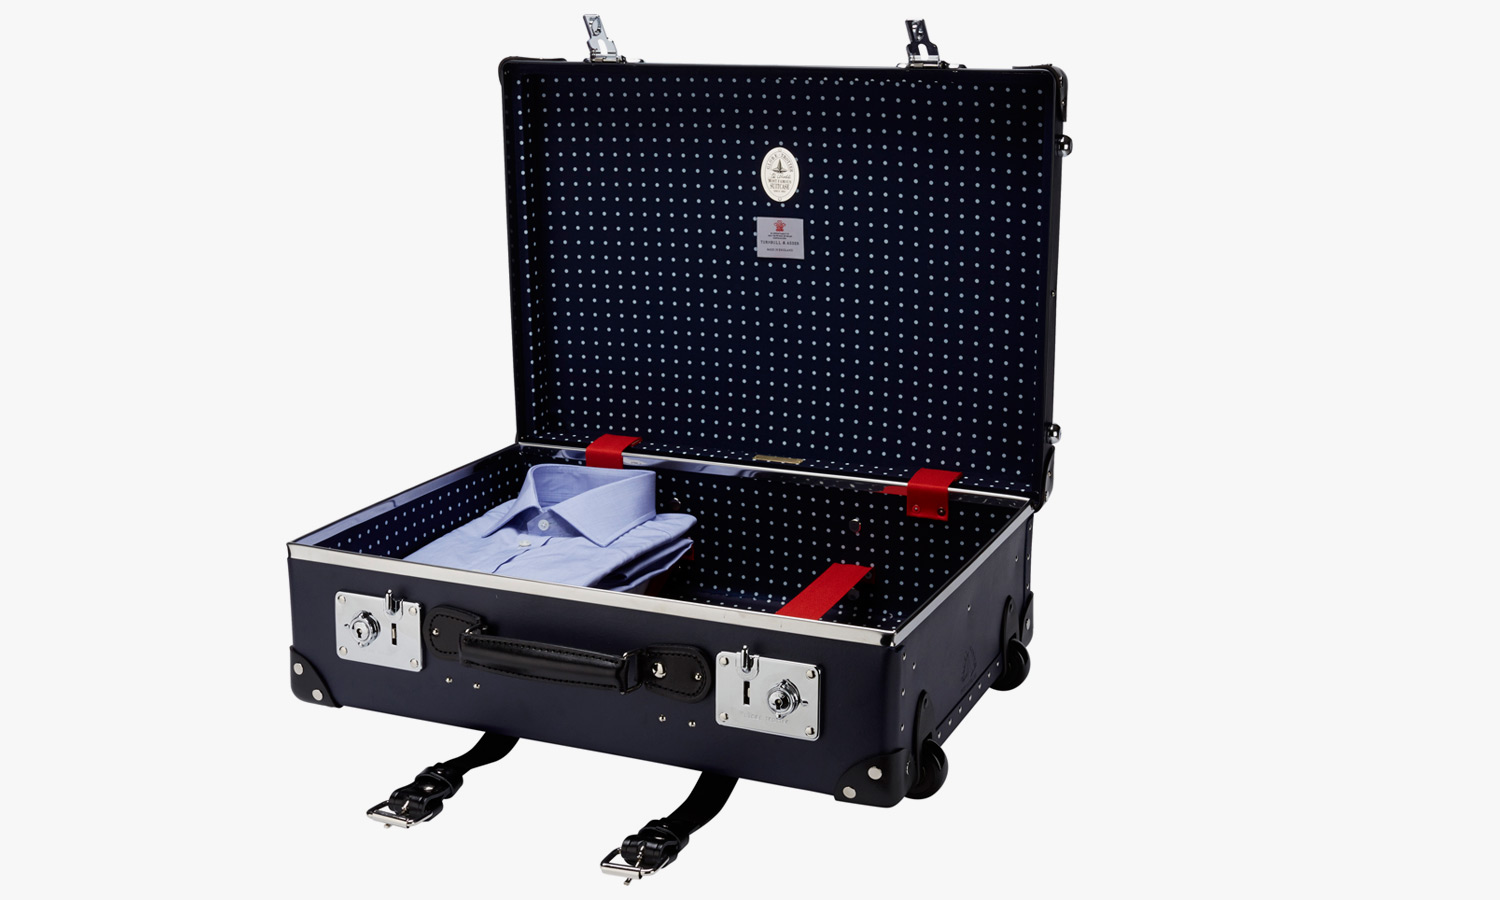 turnbull-asser-winston-luggage-2015-feat